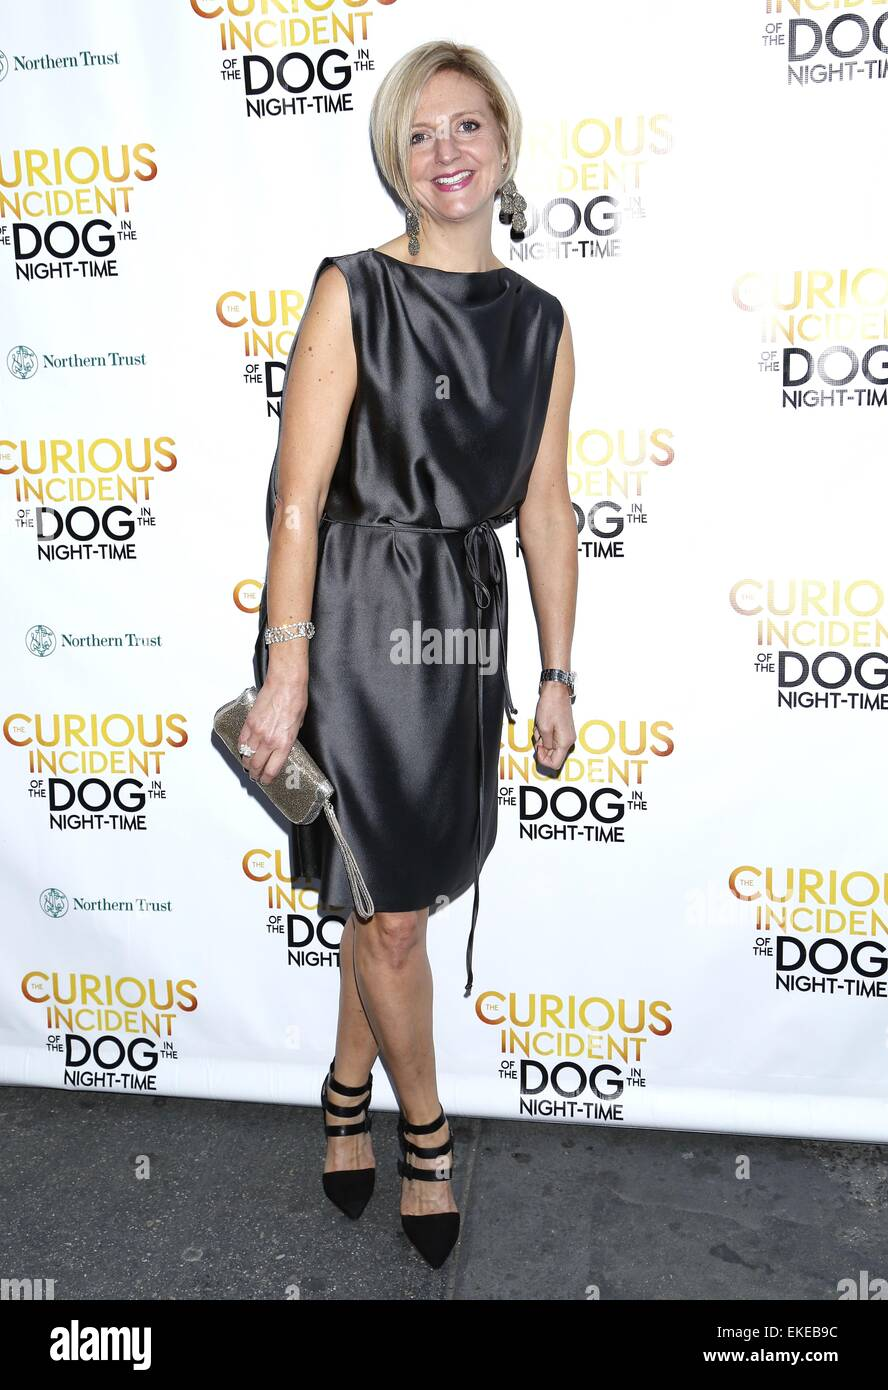 Opening night of The Curious Incident of the Dog in the Night-Time at the Barrymore Theatre - Arrivals. Featuring: - Stock Image